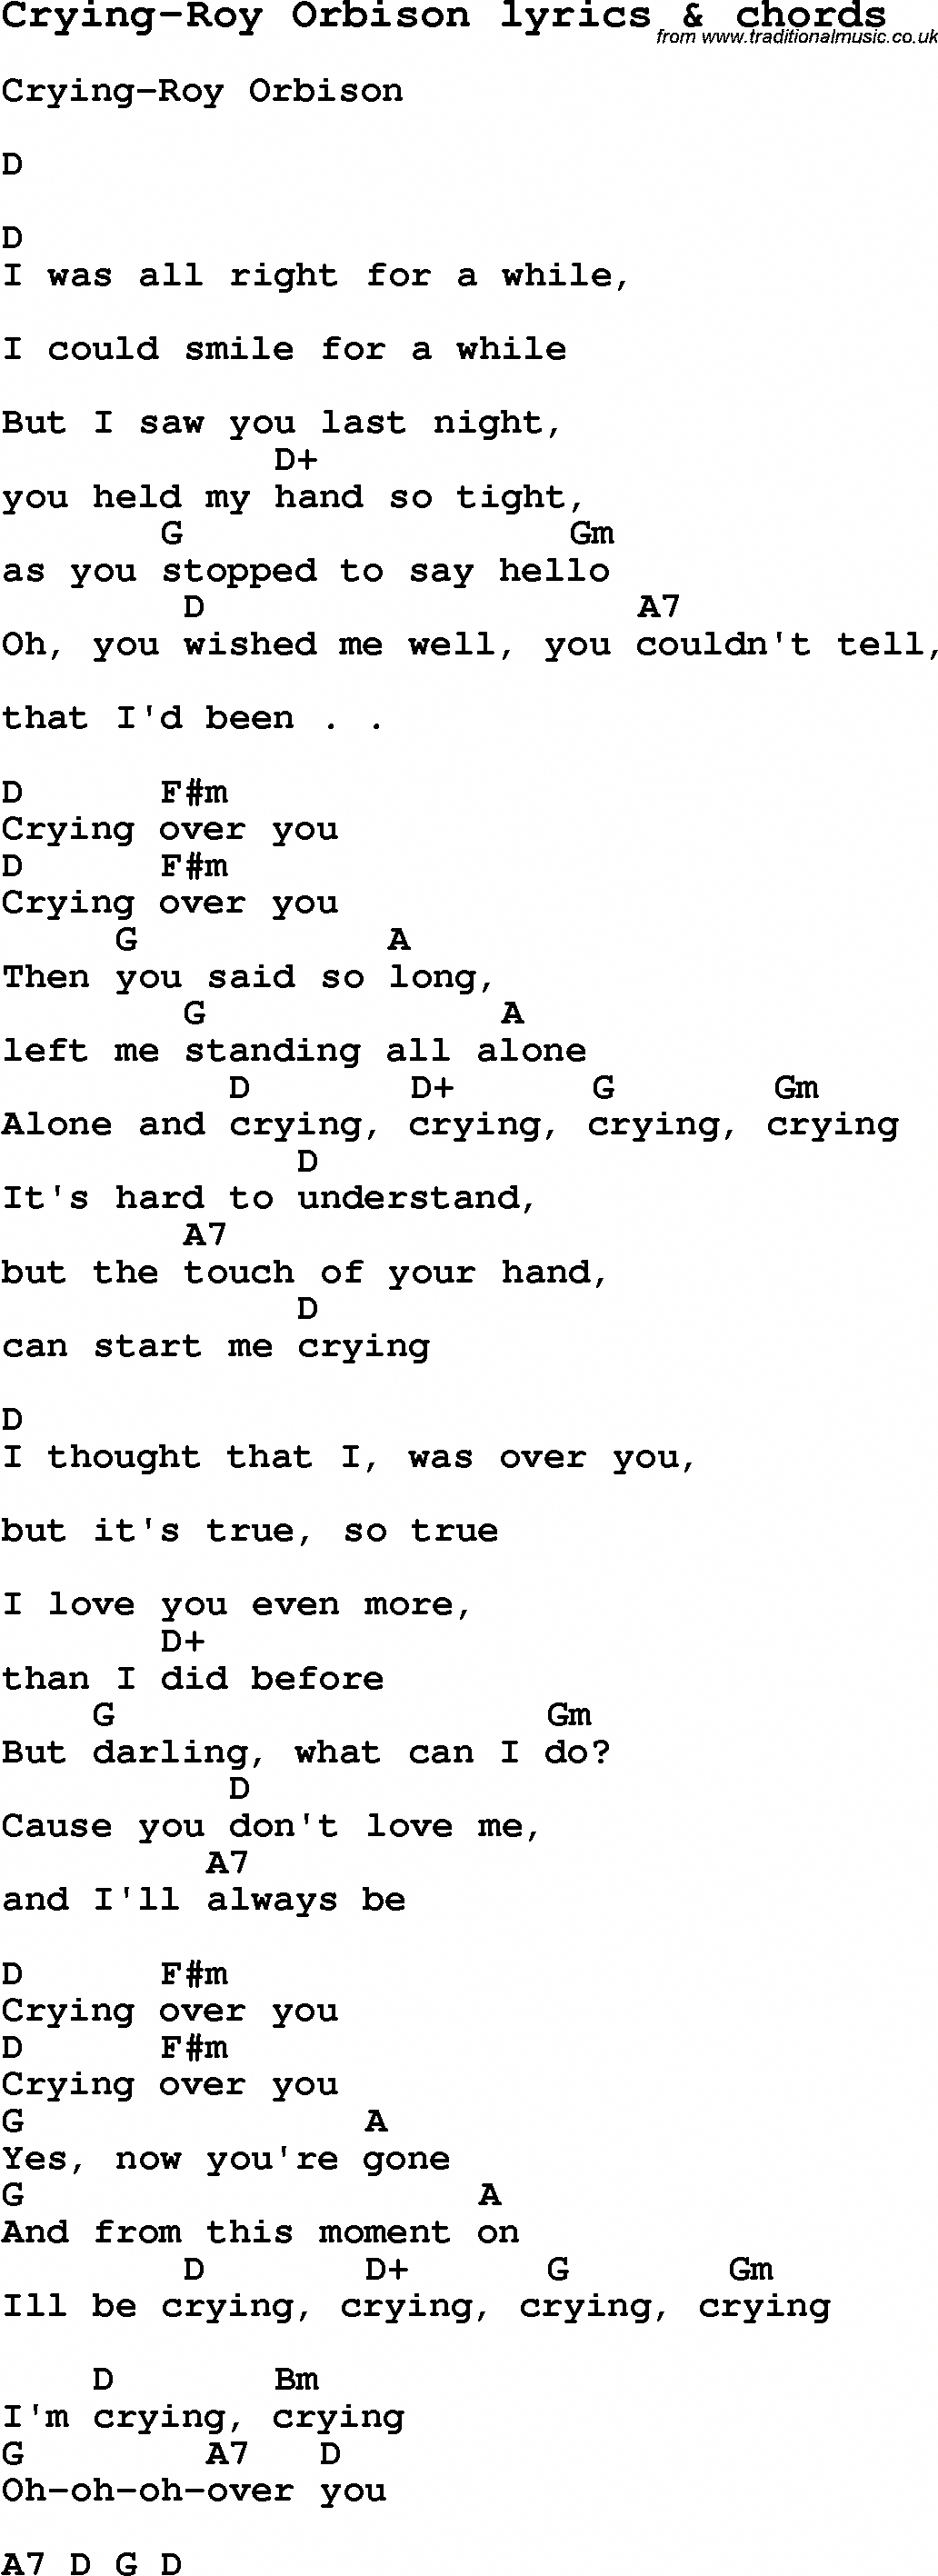 Love Song Lyrics for CryingRoy Orbison with chords for